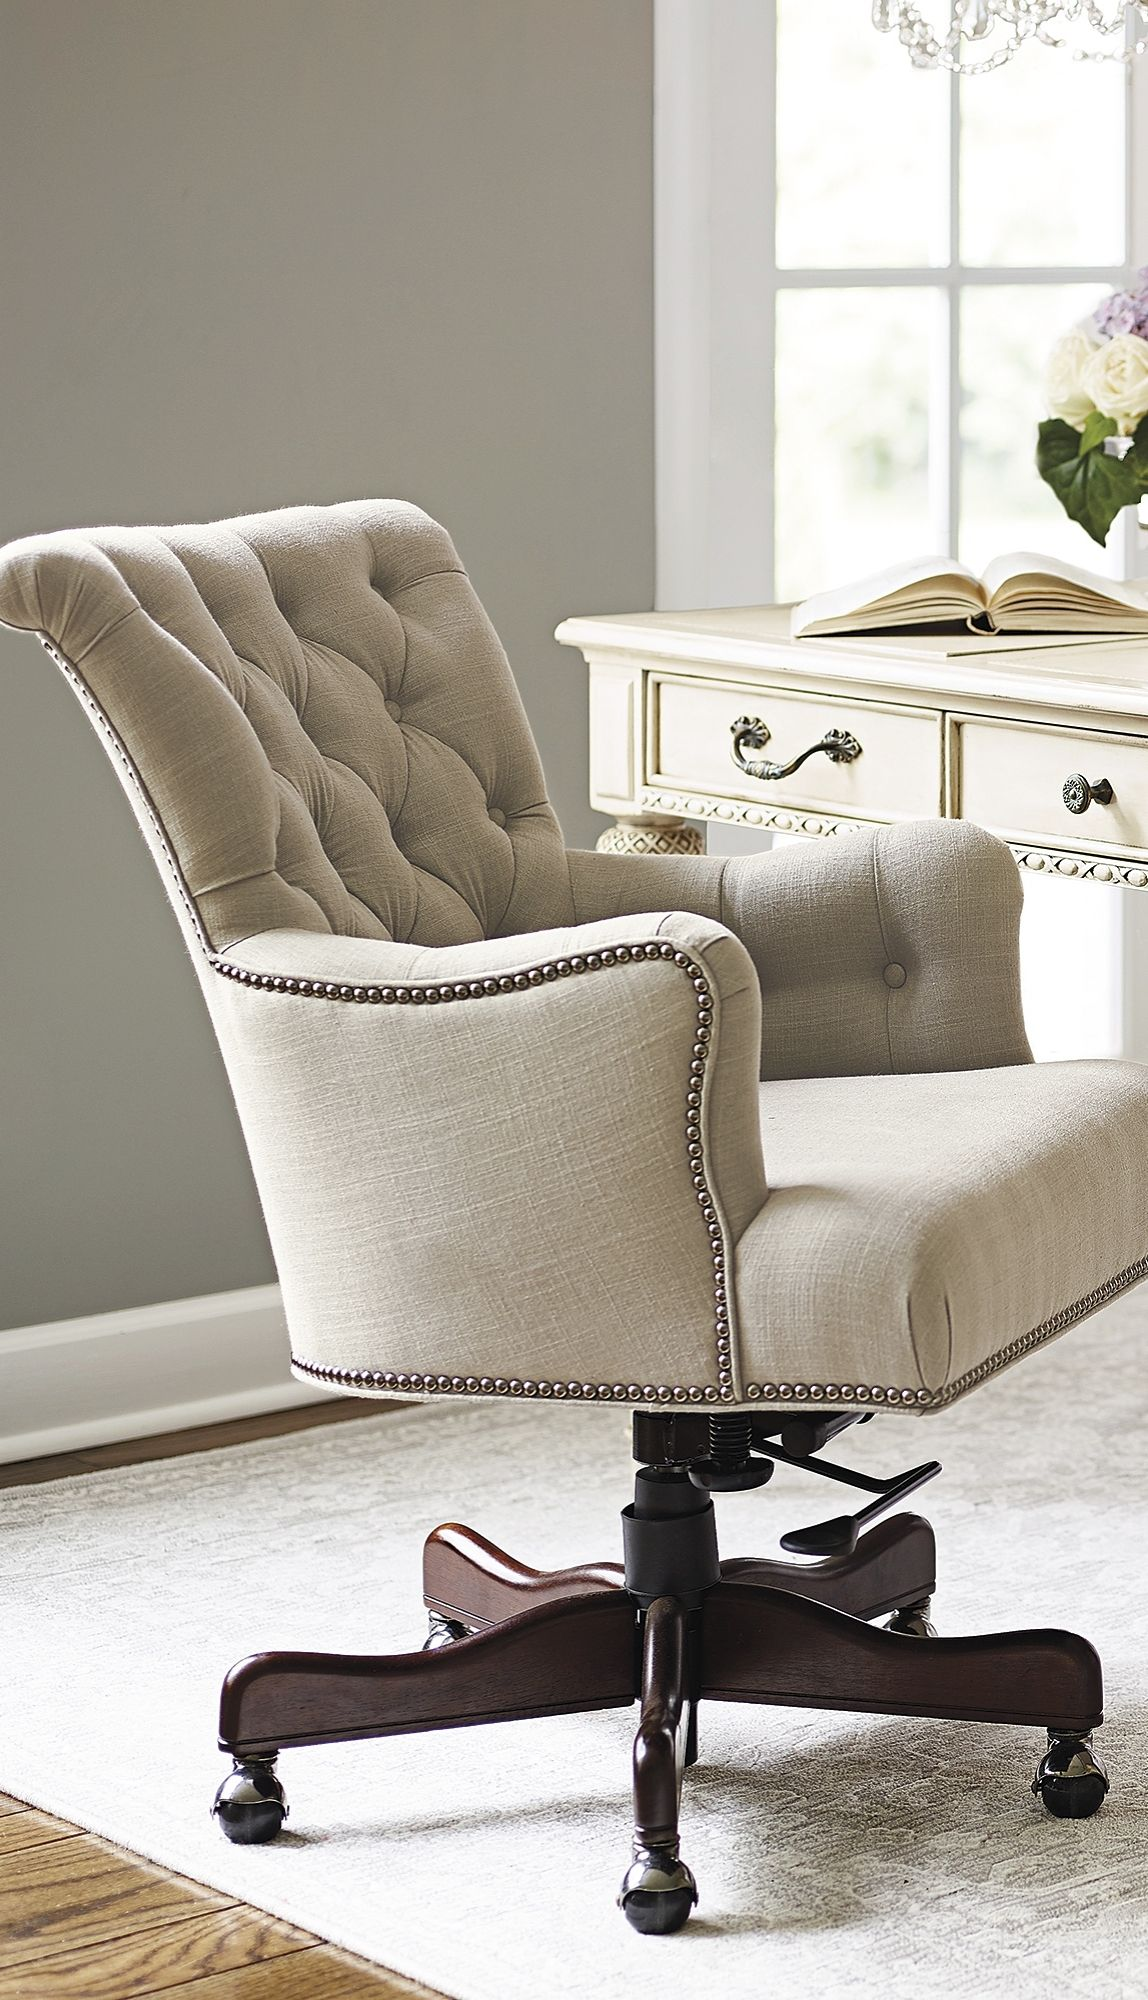 Linen Office Chair Button Tufted Linen Accented With Silver Nailhead Trim Defines The